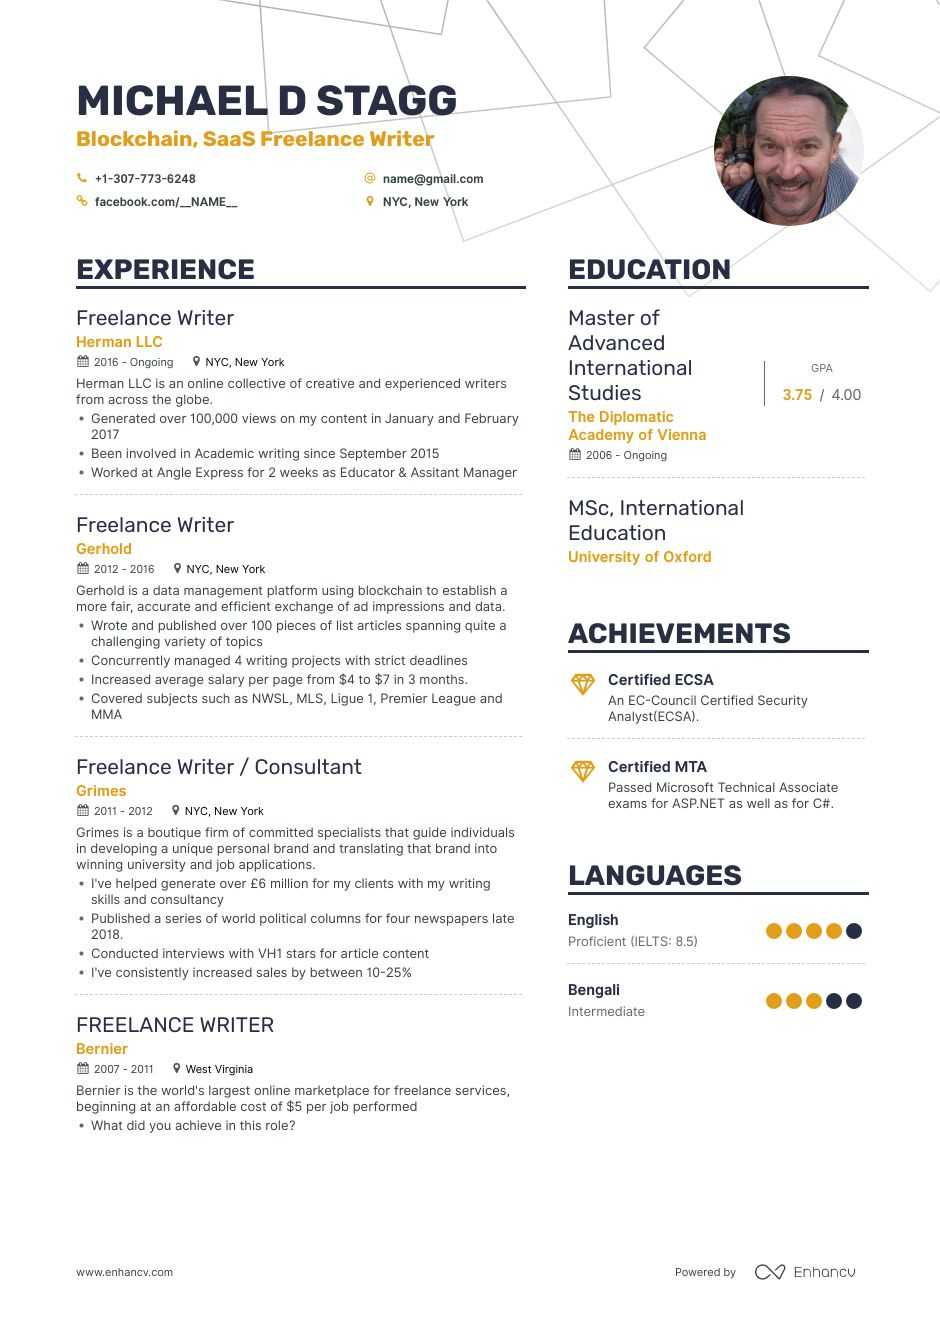 freelance writer resume examples and skills you need to get hired digital content summary Resume Digital Content Writer Resume